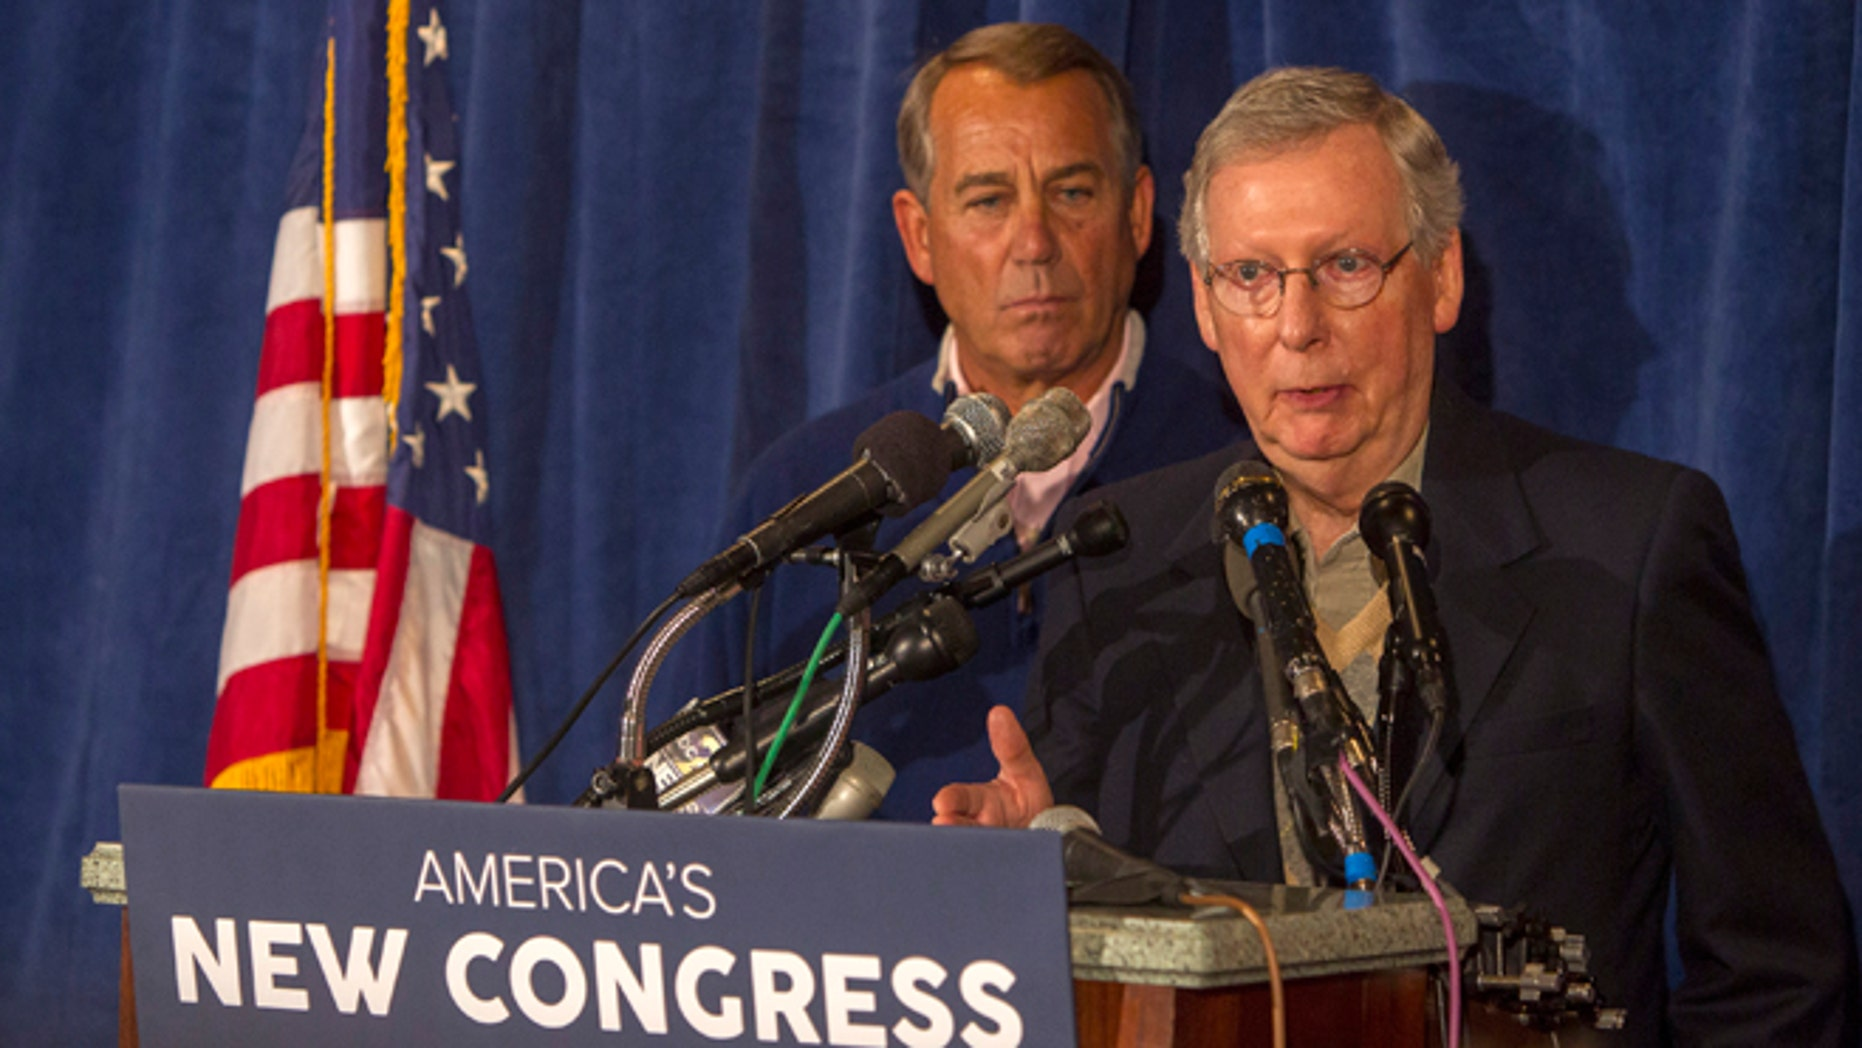 House Speaker John Boehner, left,  and Senate Majority Leader Mitch McConnell meet with the press at the GOP retreat at the Hershey Lodge in Hershey, Pa., Thursday, Jan. 15, 2015. (AP Photo/PennLive.com, Mark Pynes )